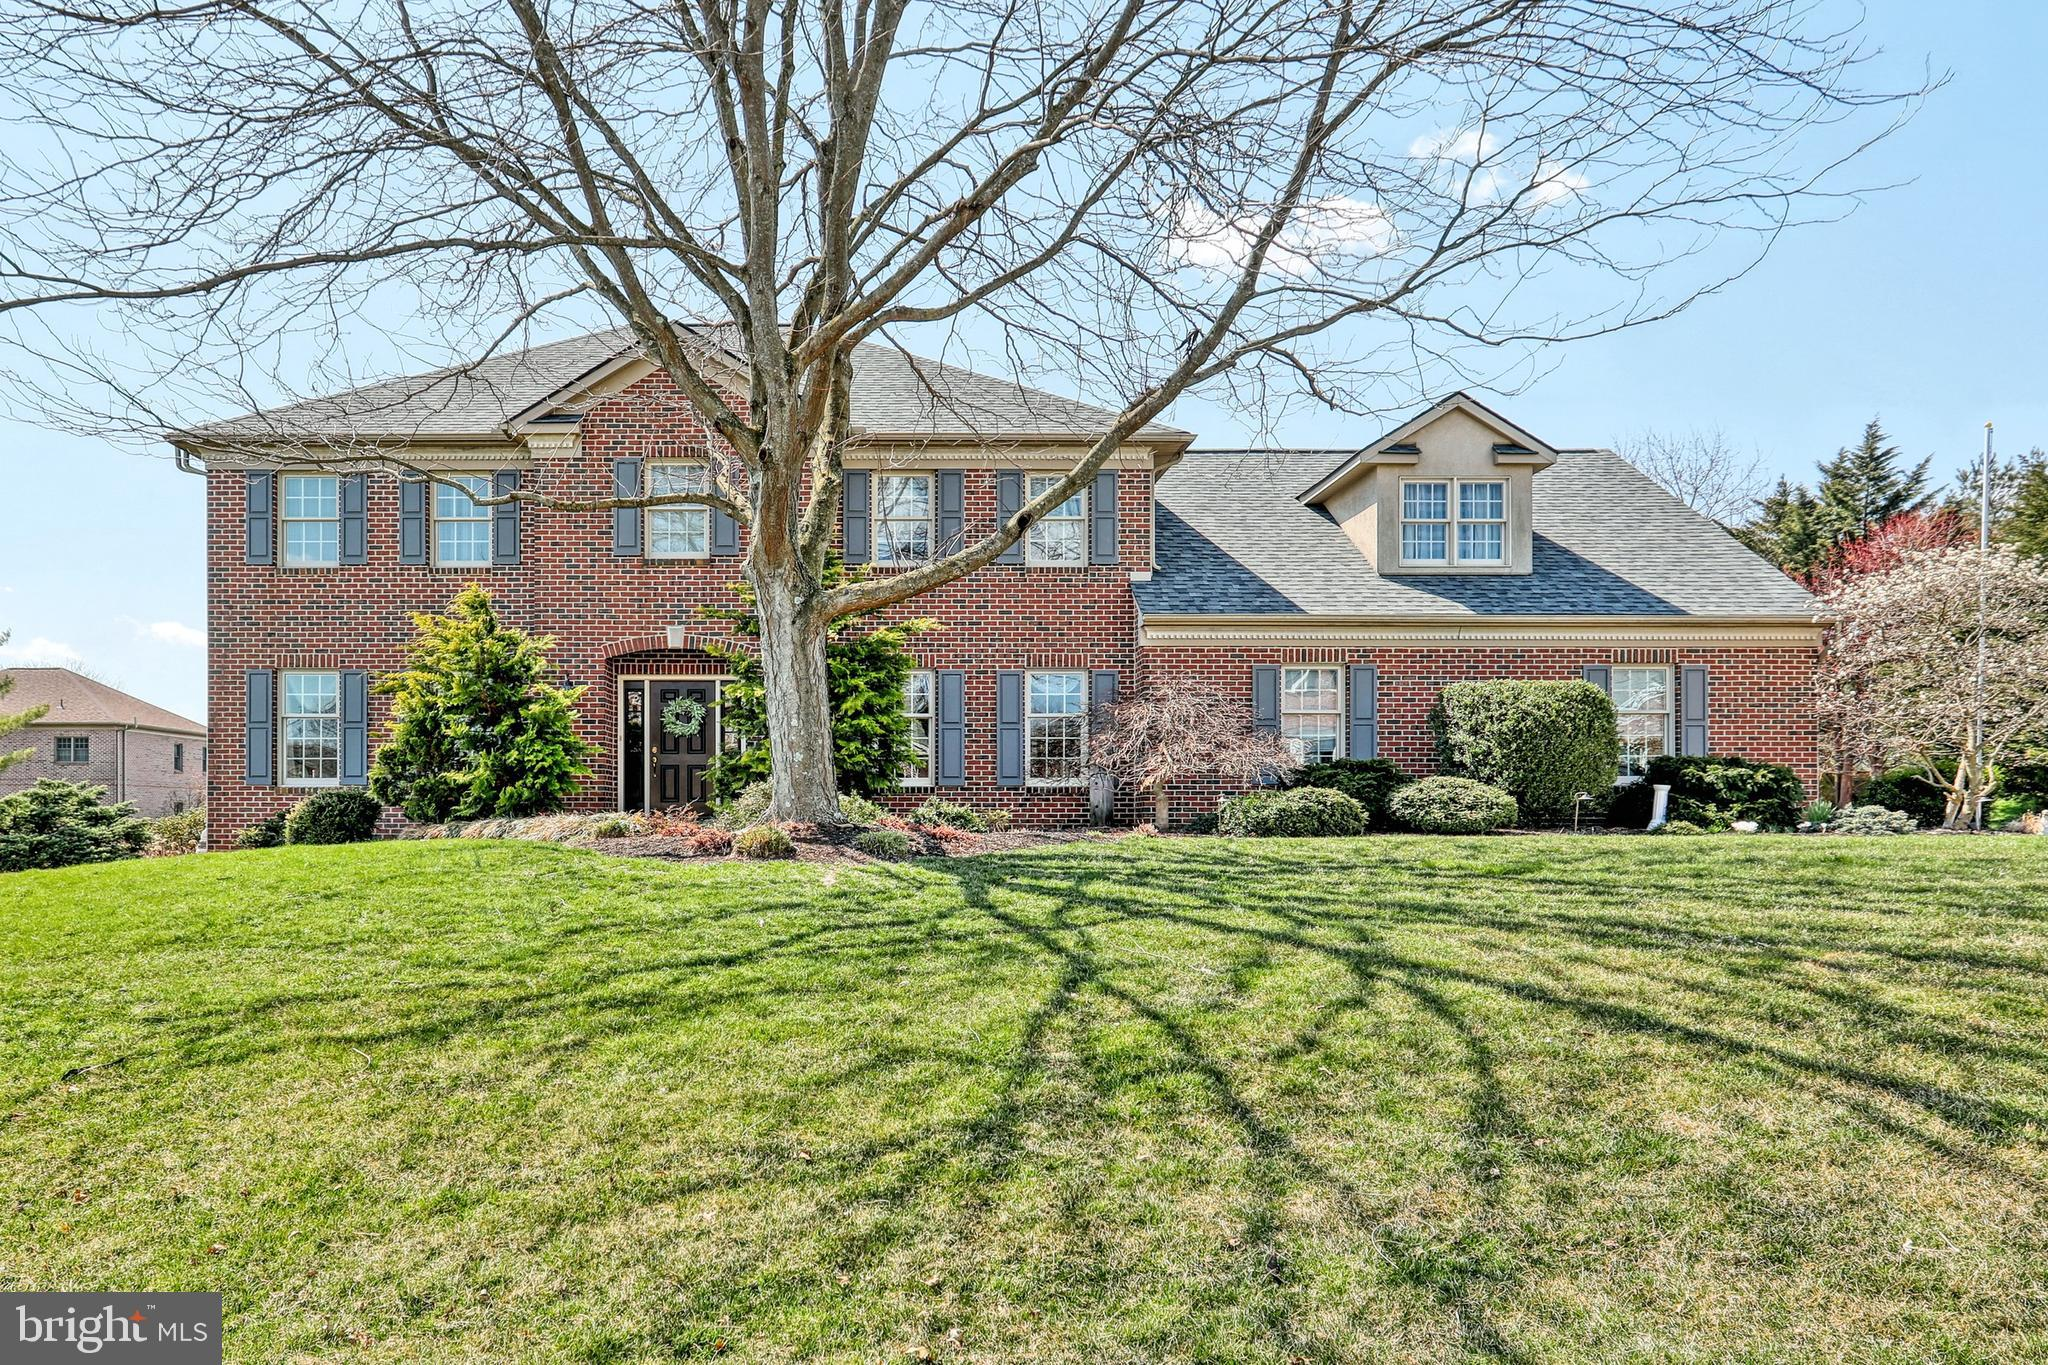 1440 BRITTANY DRIVE, YORK, PA 17404